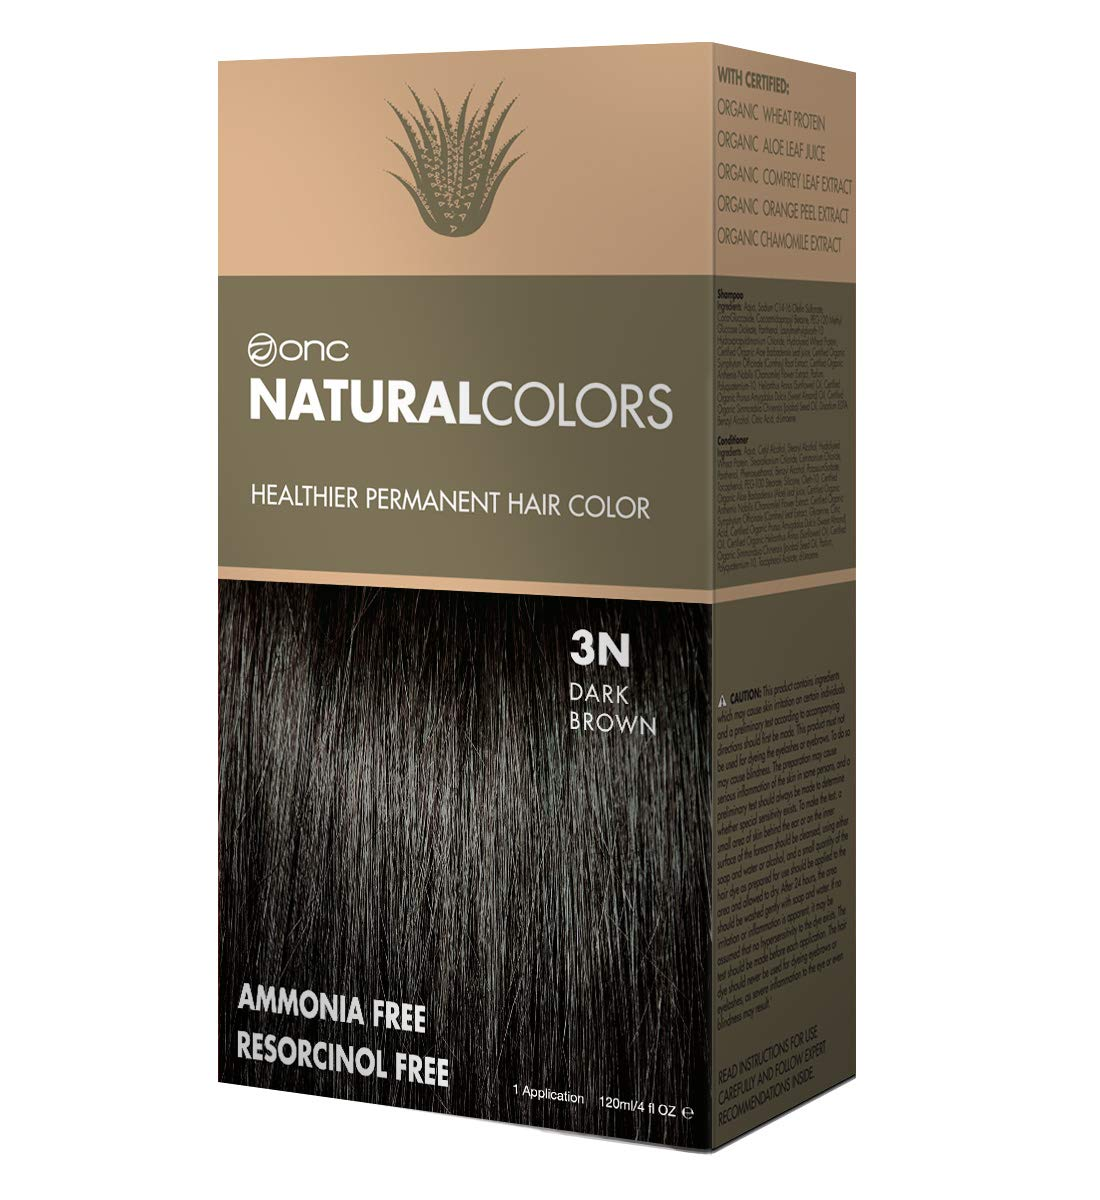 ONC NATURALCOLORS Healthier Permanent Hair Color, Certified Organic Salon Quality Hair Dye, Ammonia-free, Resorcinol-free, Paraben-free, Low pH, Best Hair Coloring (3N Natural Dark Brown) by ONC NATURALCOLORS